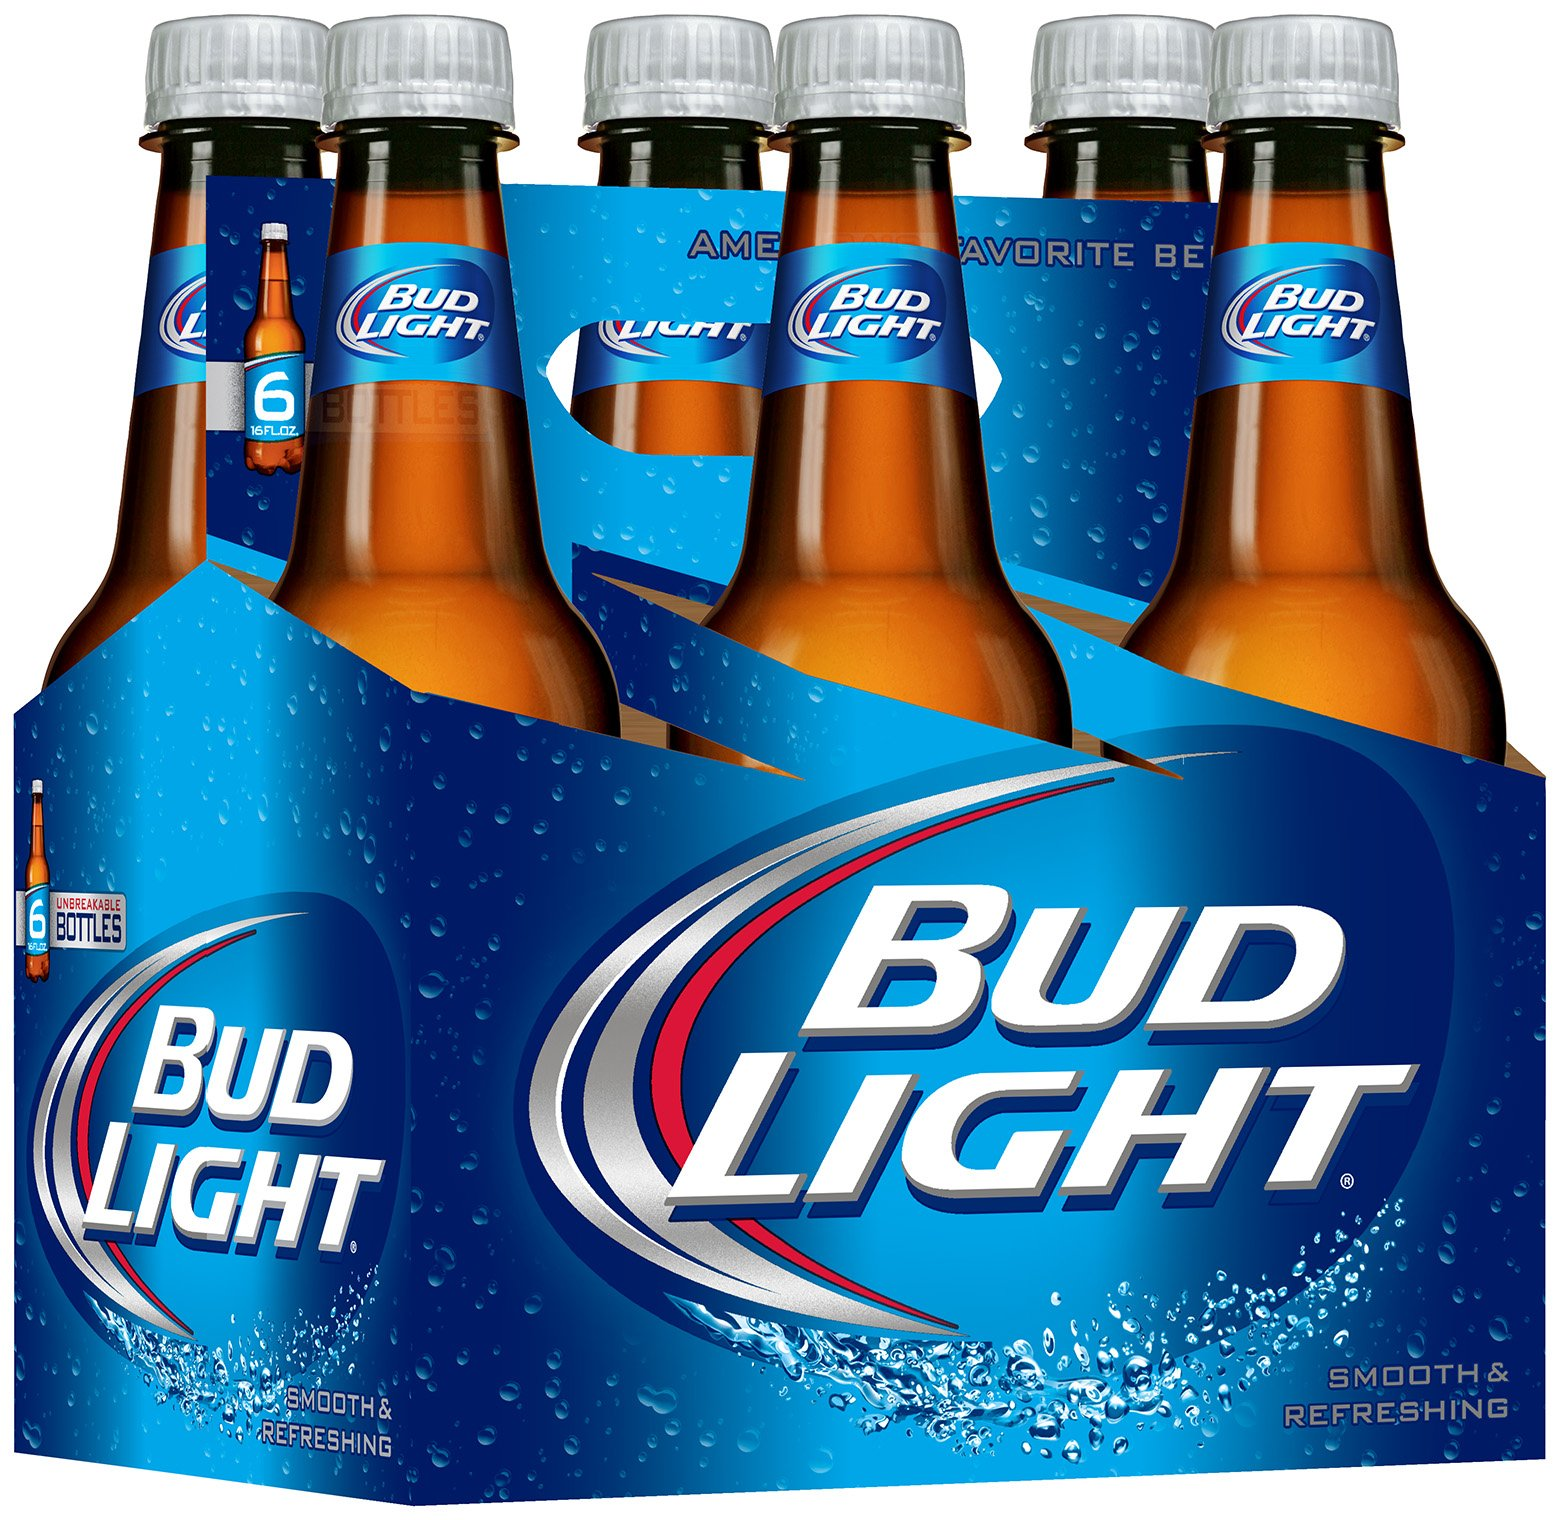 Bud Light Beer 6 PK Plastic Bottles   Shop Bud Light Beer 6 PK Plastic  Bottles   Shop Bud Light Beer 6 PK Plastic Bottles   Shop Bud Light Beer 6  PK ...